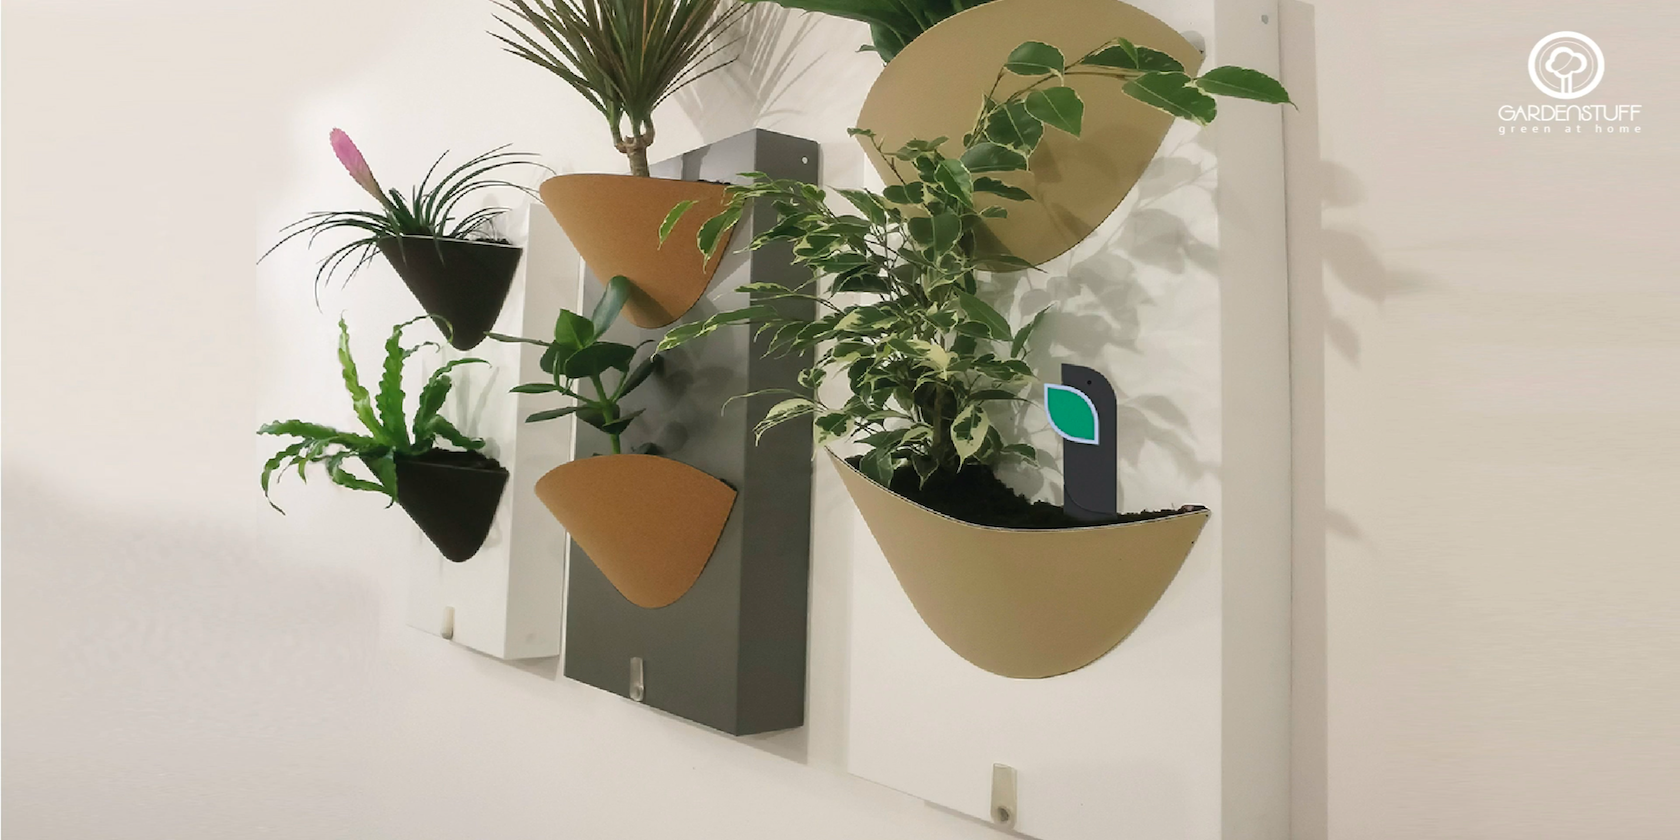 GardenStuff Wants You to Bring the Outdoors Inside with the ELIoT Smart Vertical Garden